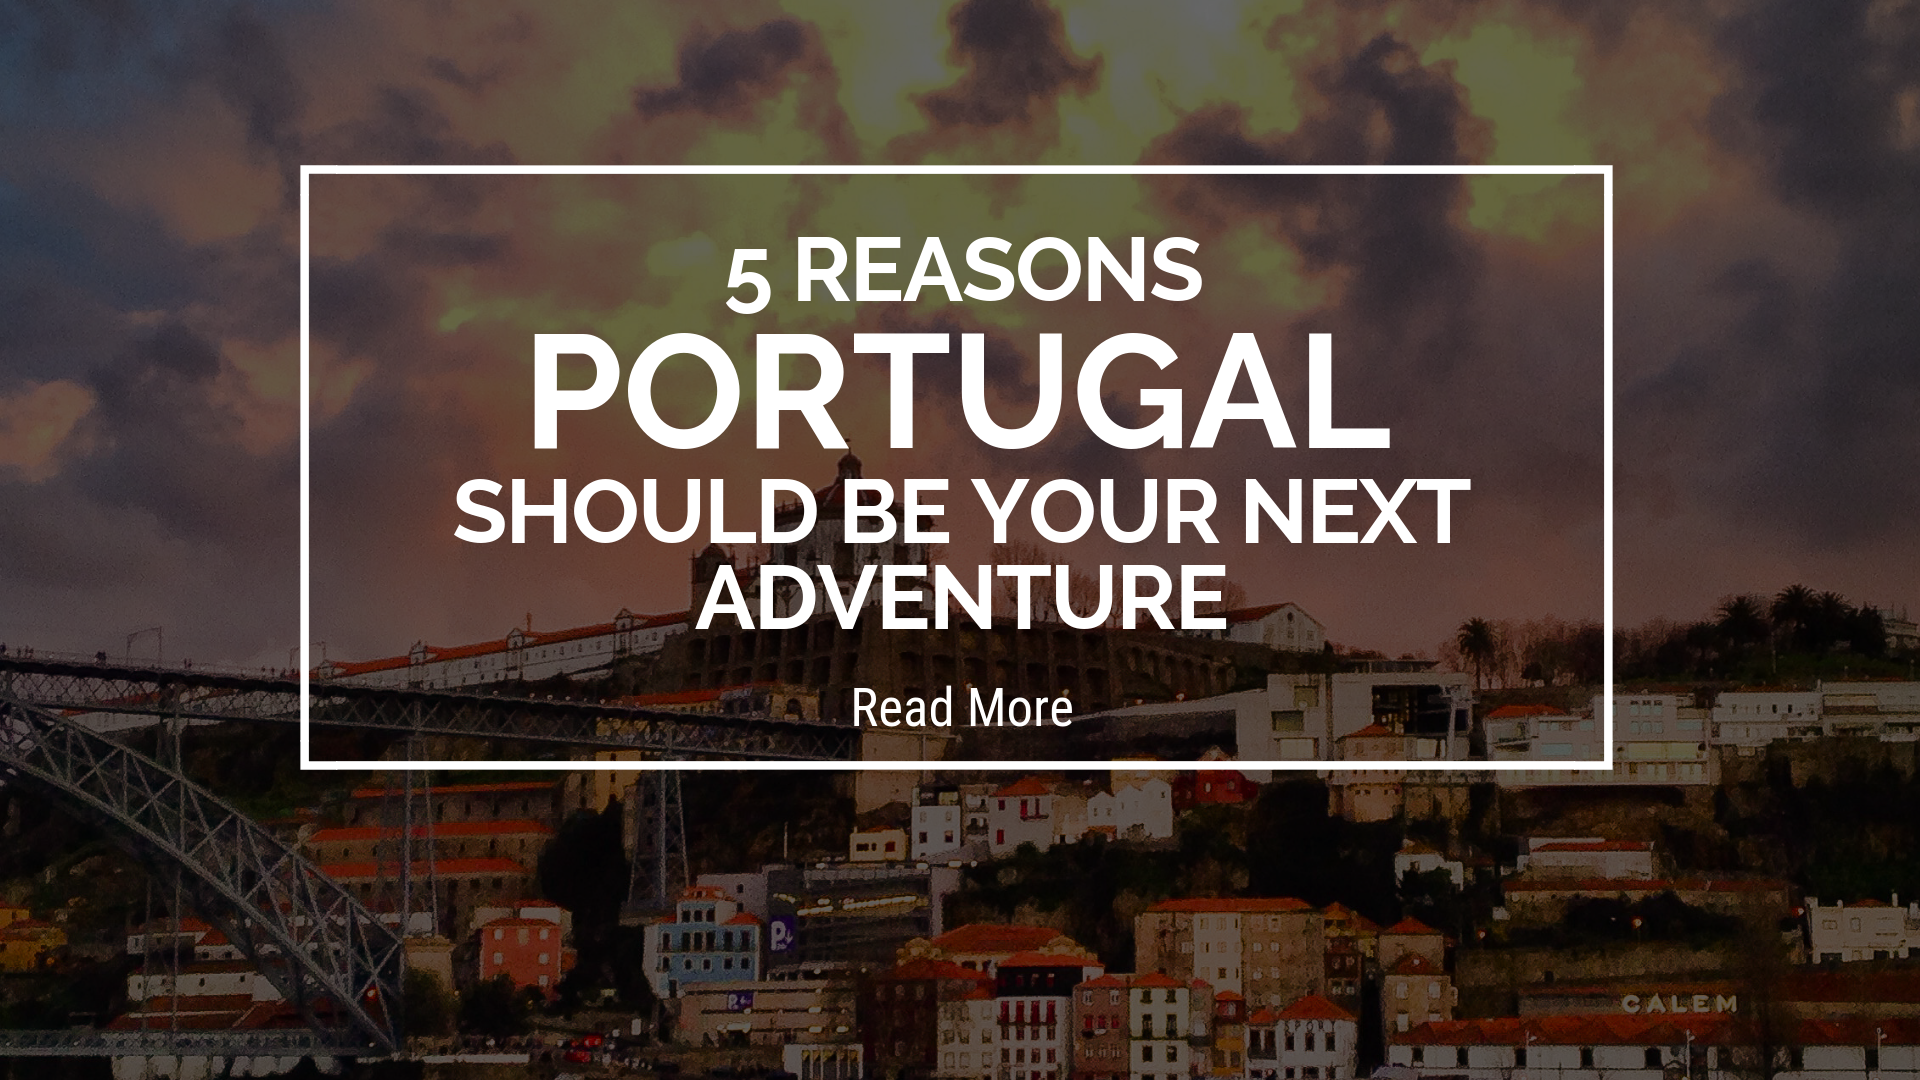 Portugal Should Be Your Next Adventure